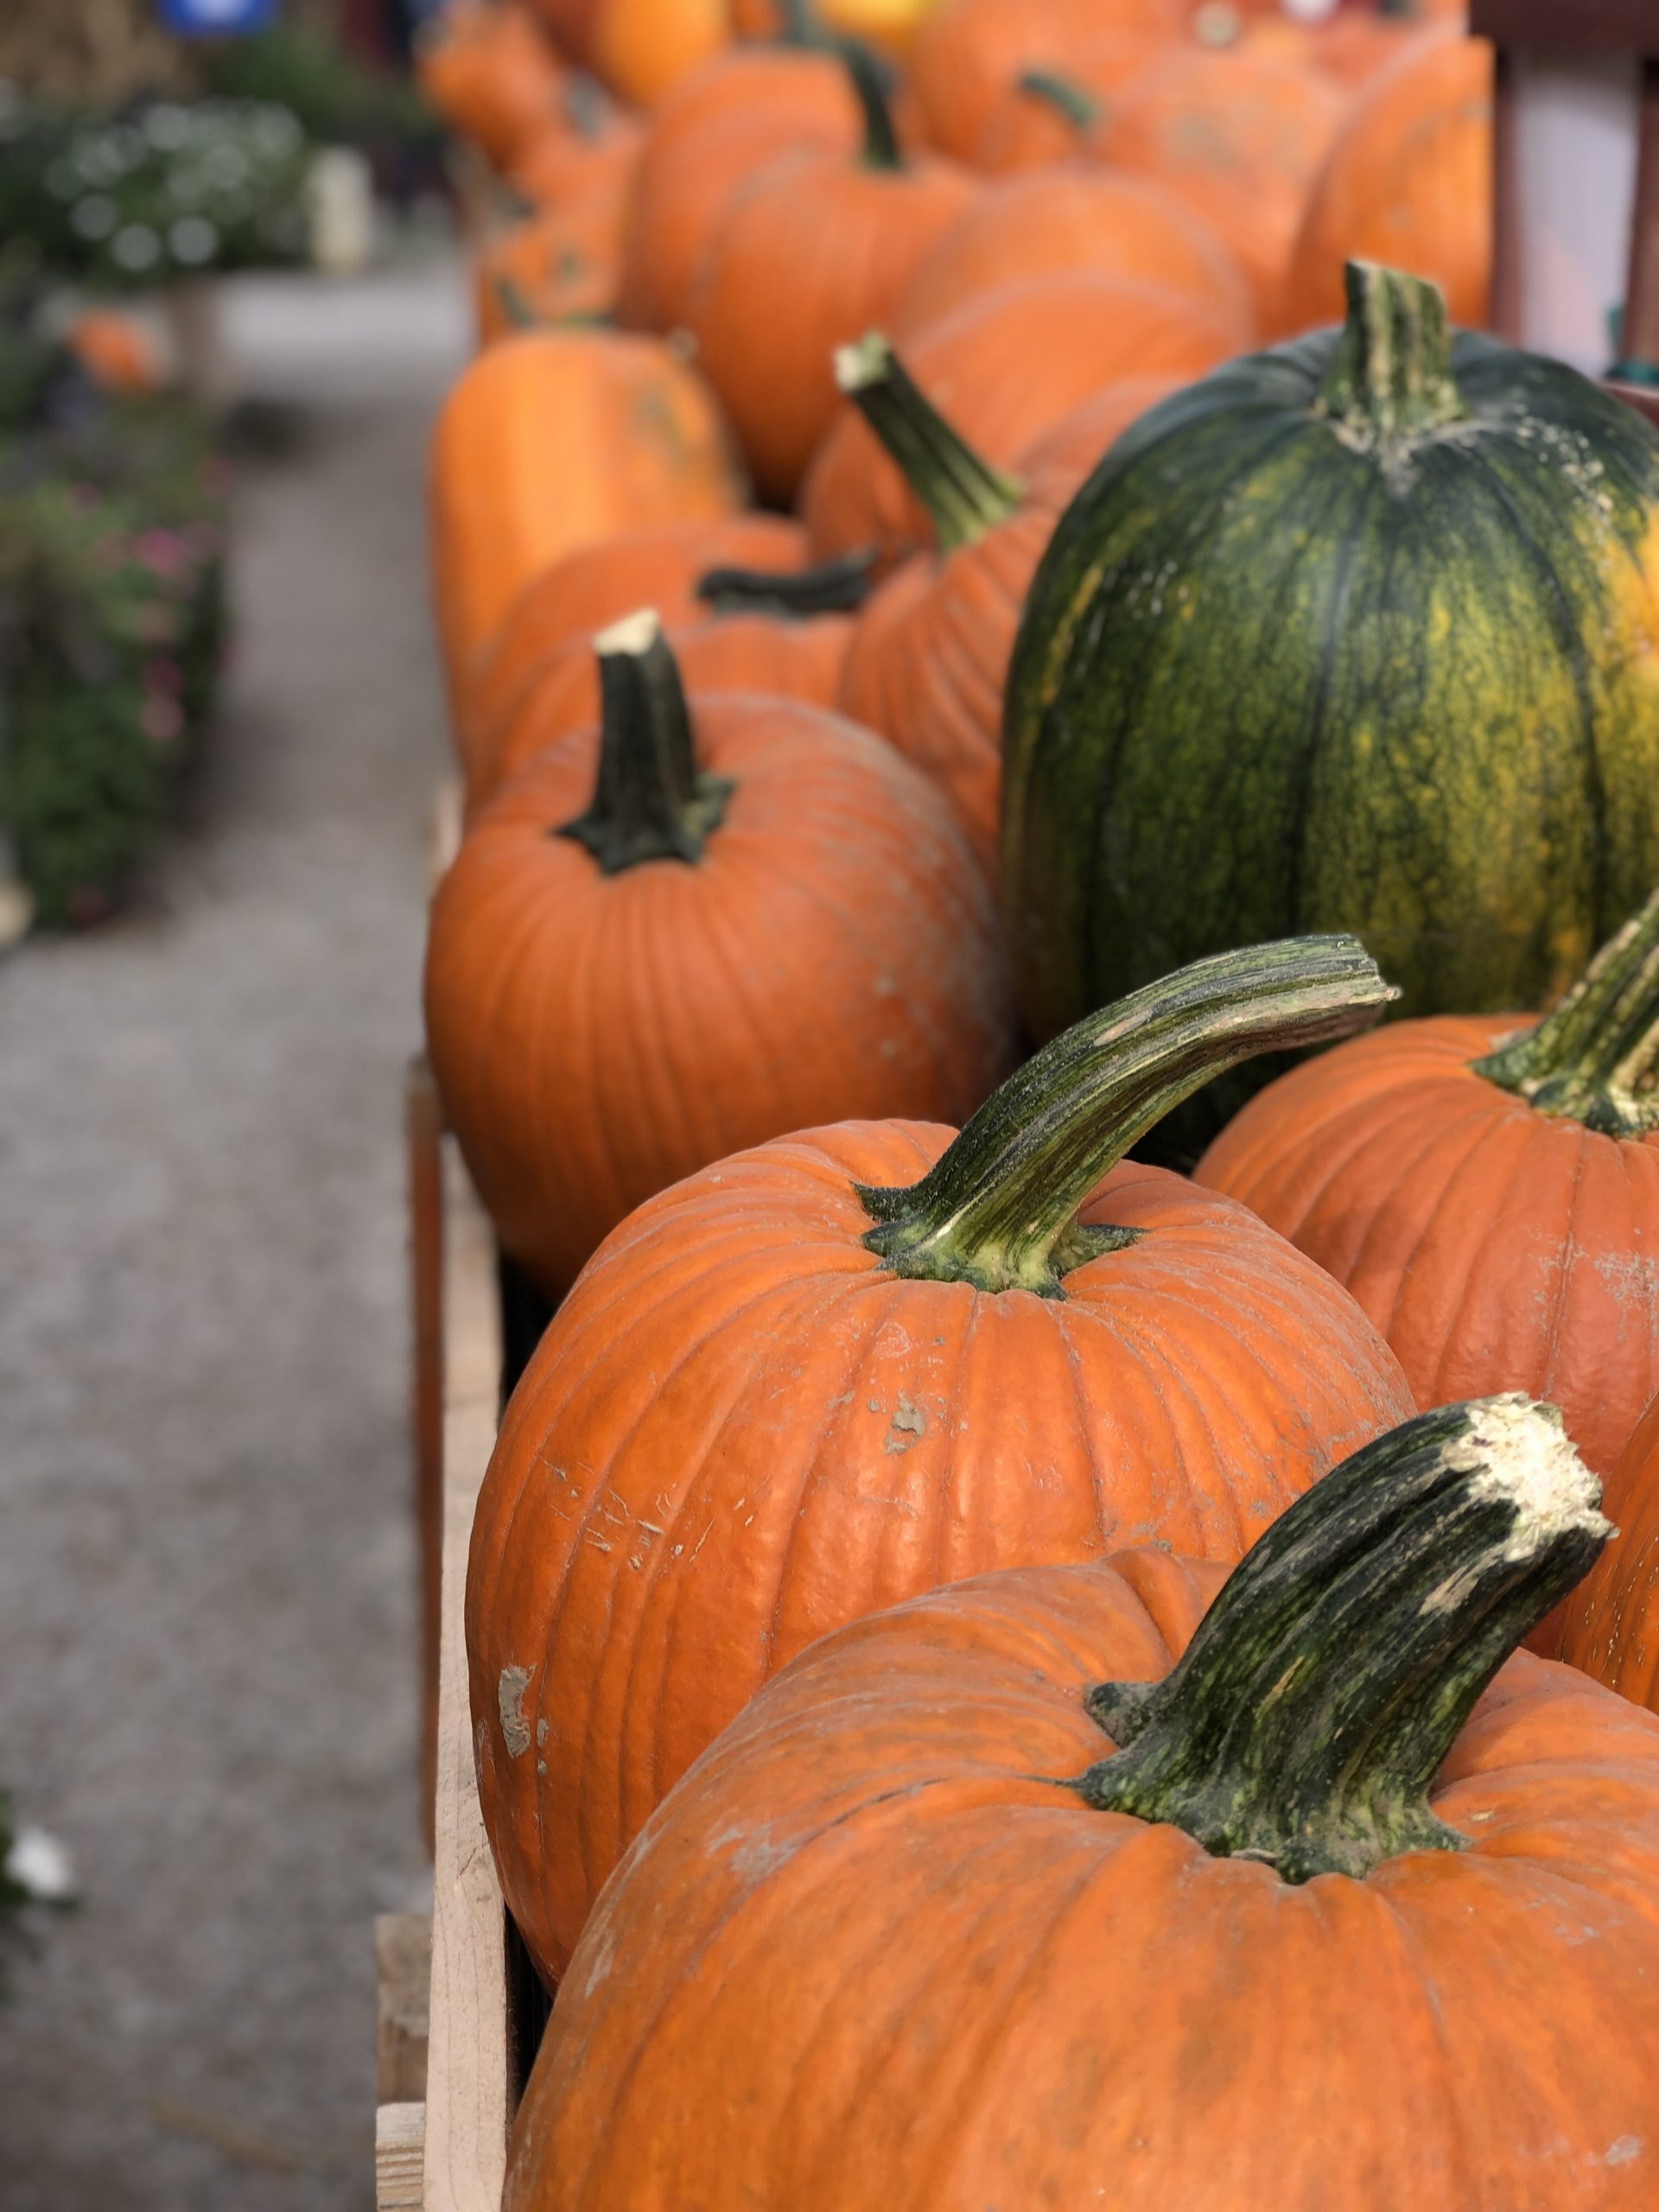 Things to do in the fall in Saint Louis